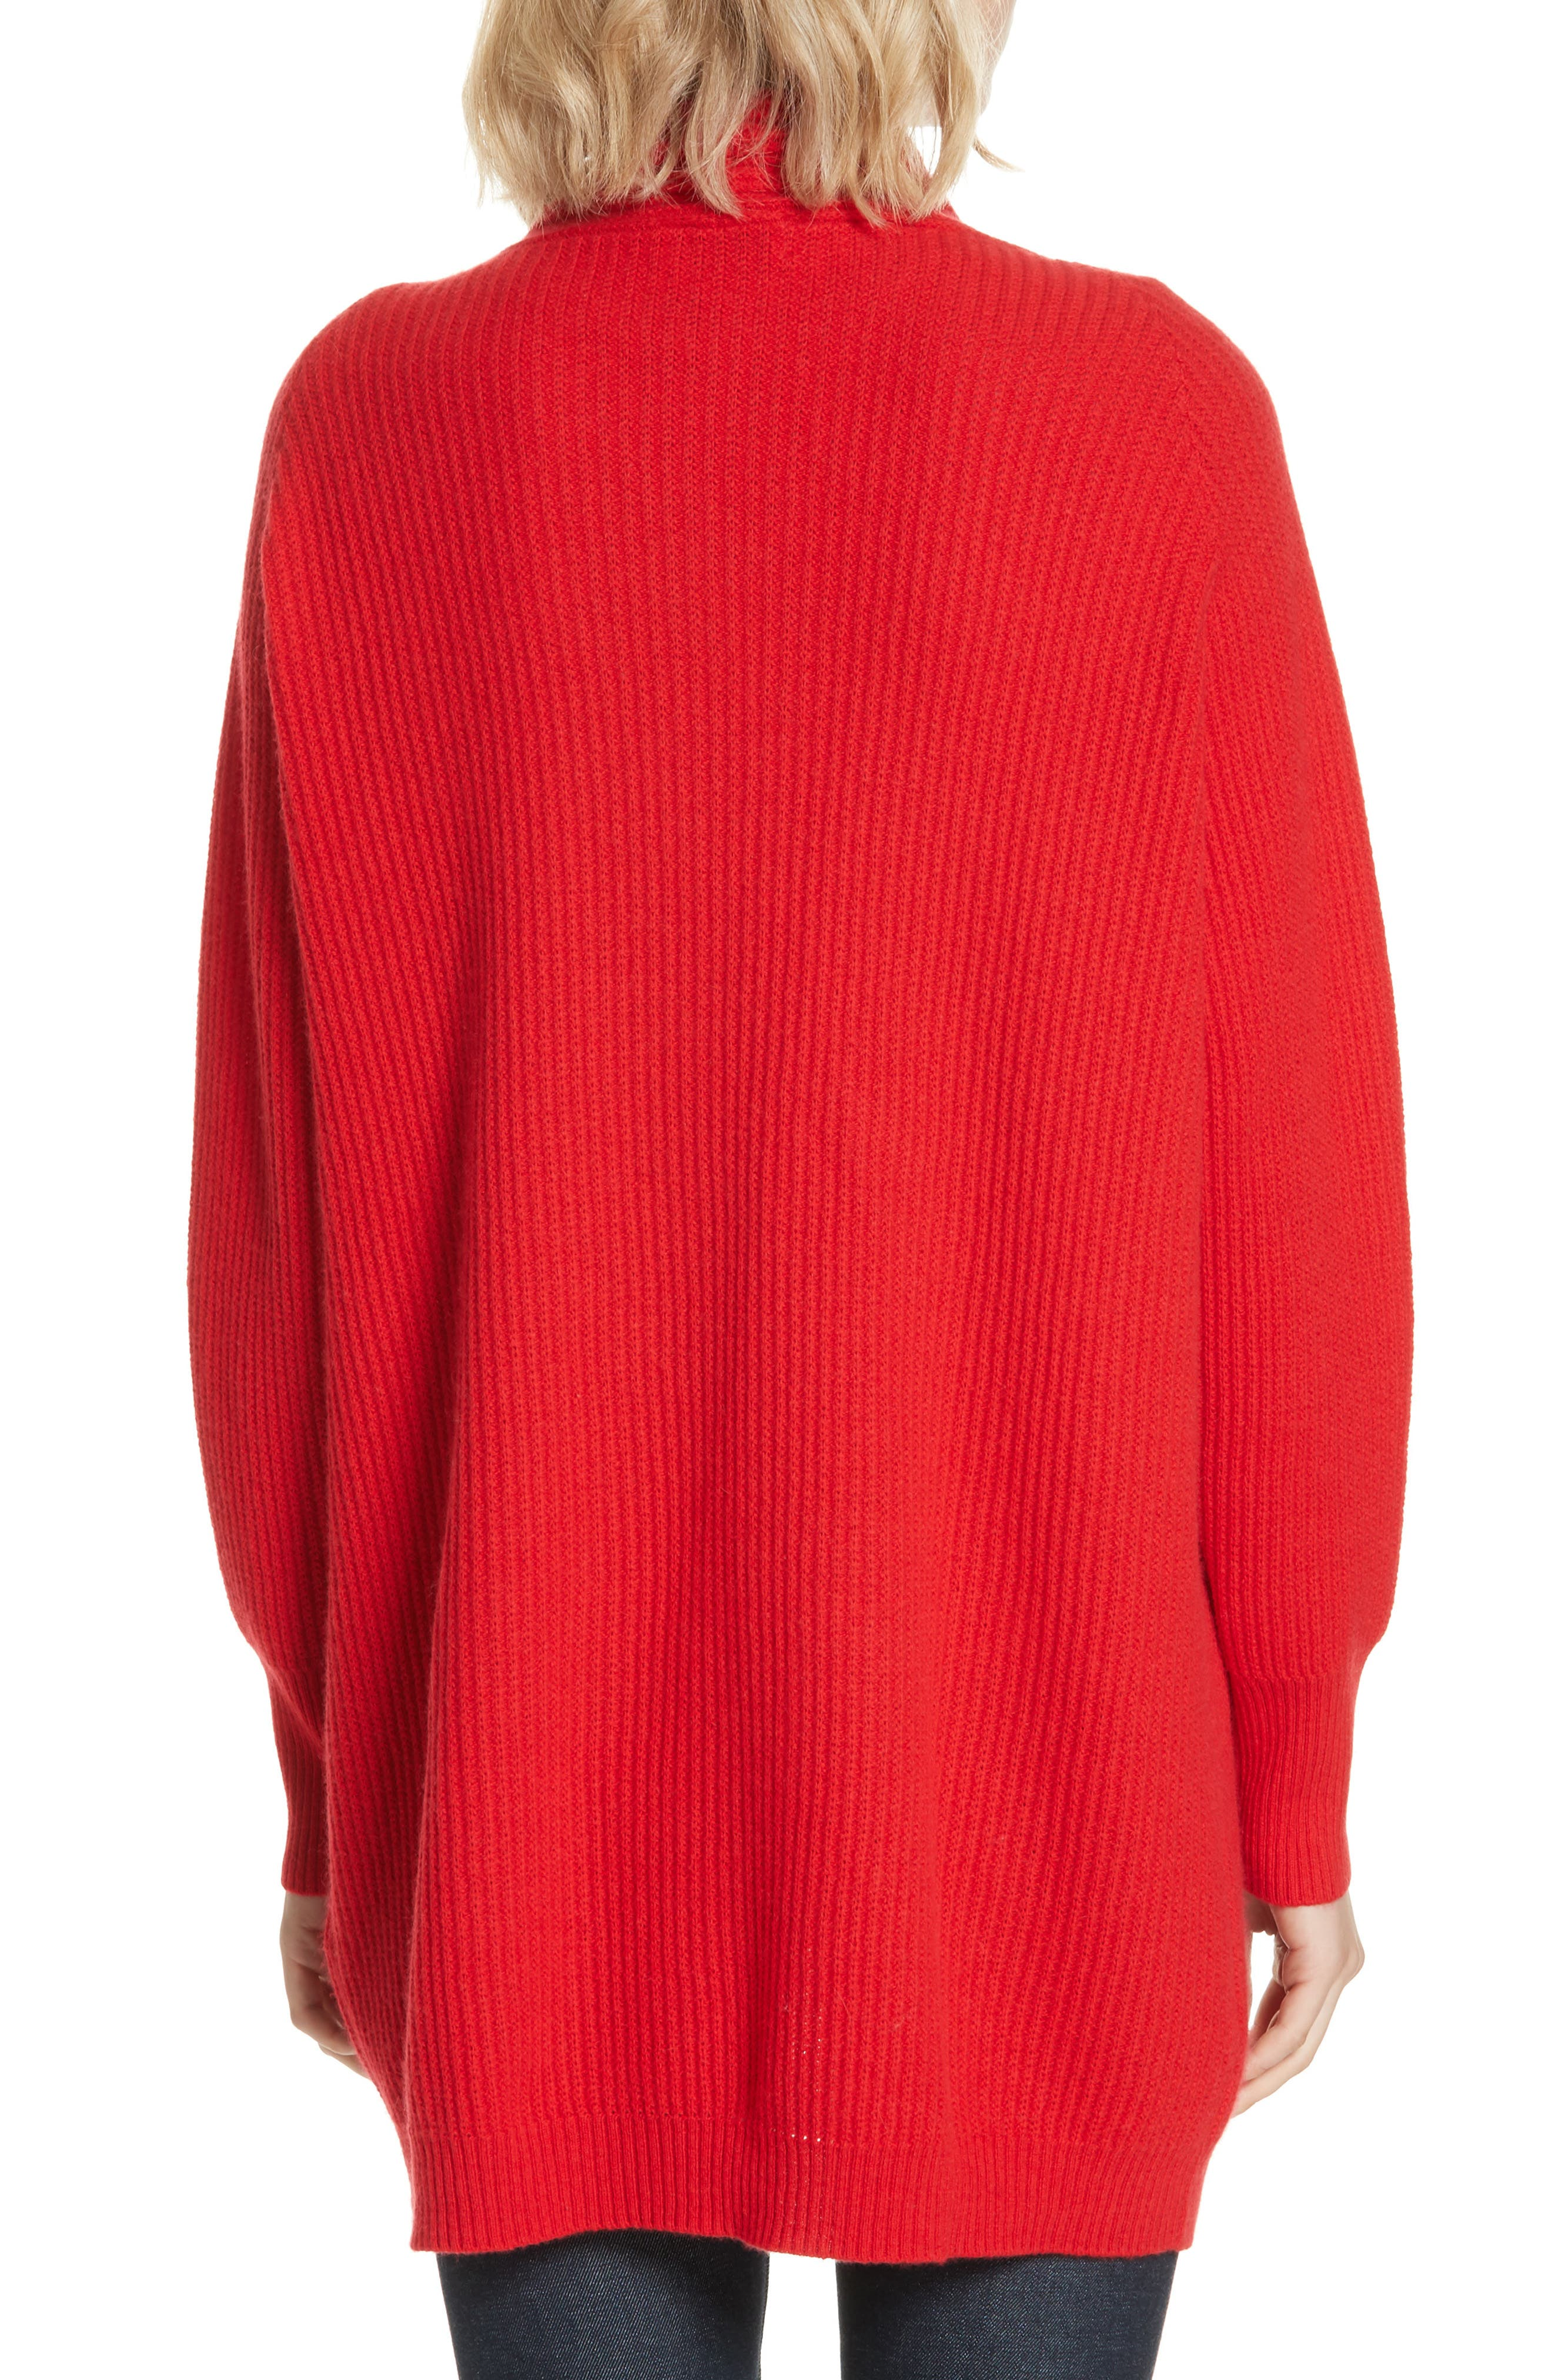 Cashmere Cardigan,                             Alternate thumbnail 2, color,                             RED